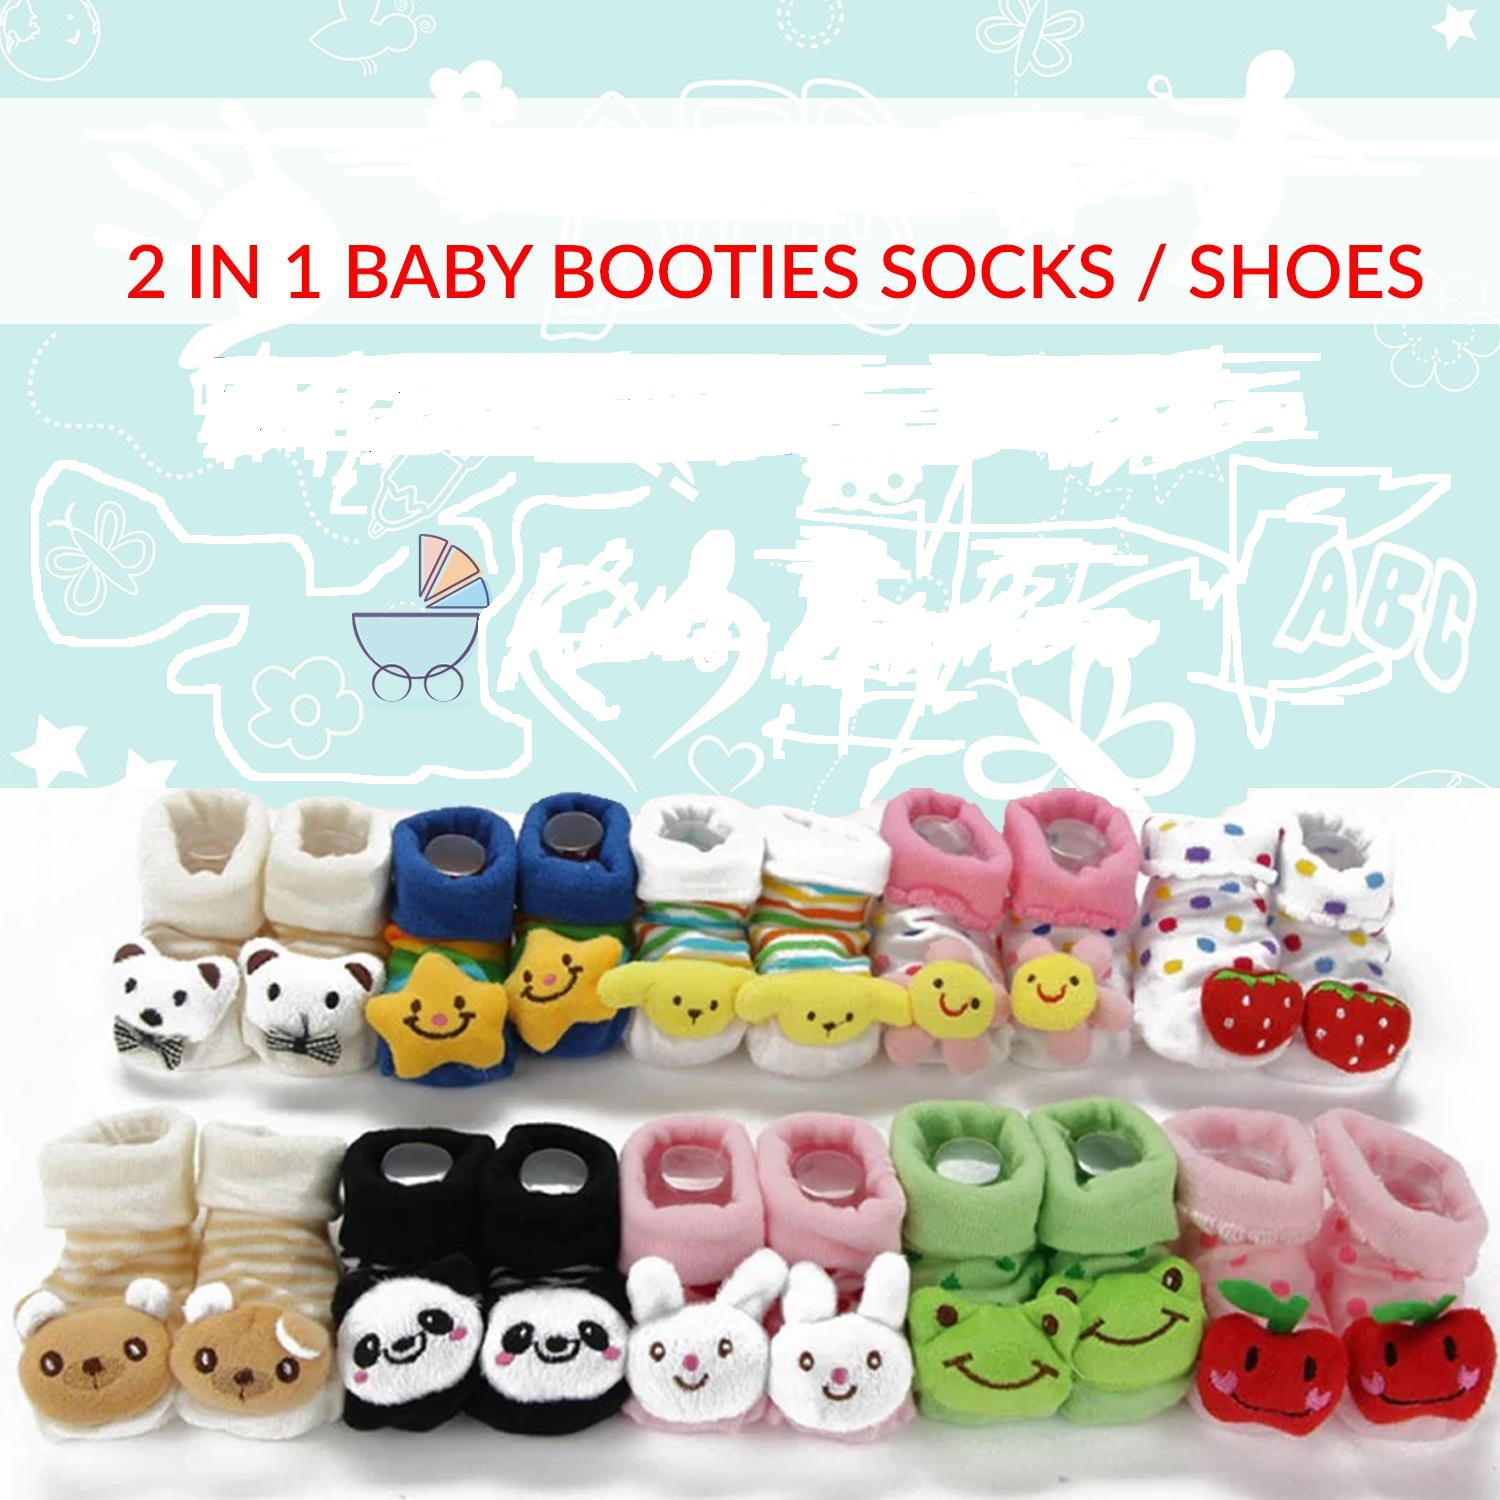 Cute Baby Booties Fabric Shoes For Winters - 0 to 12 Months Babies